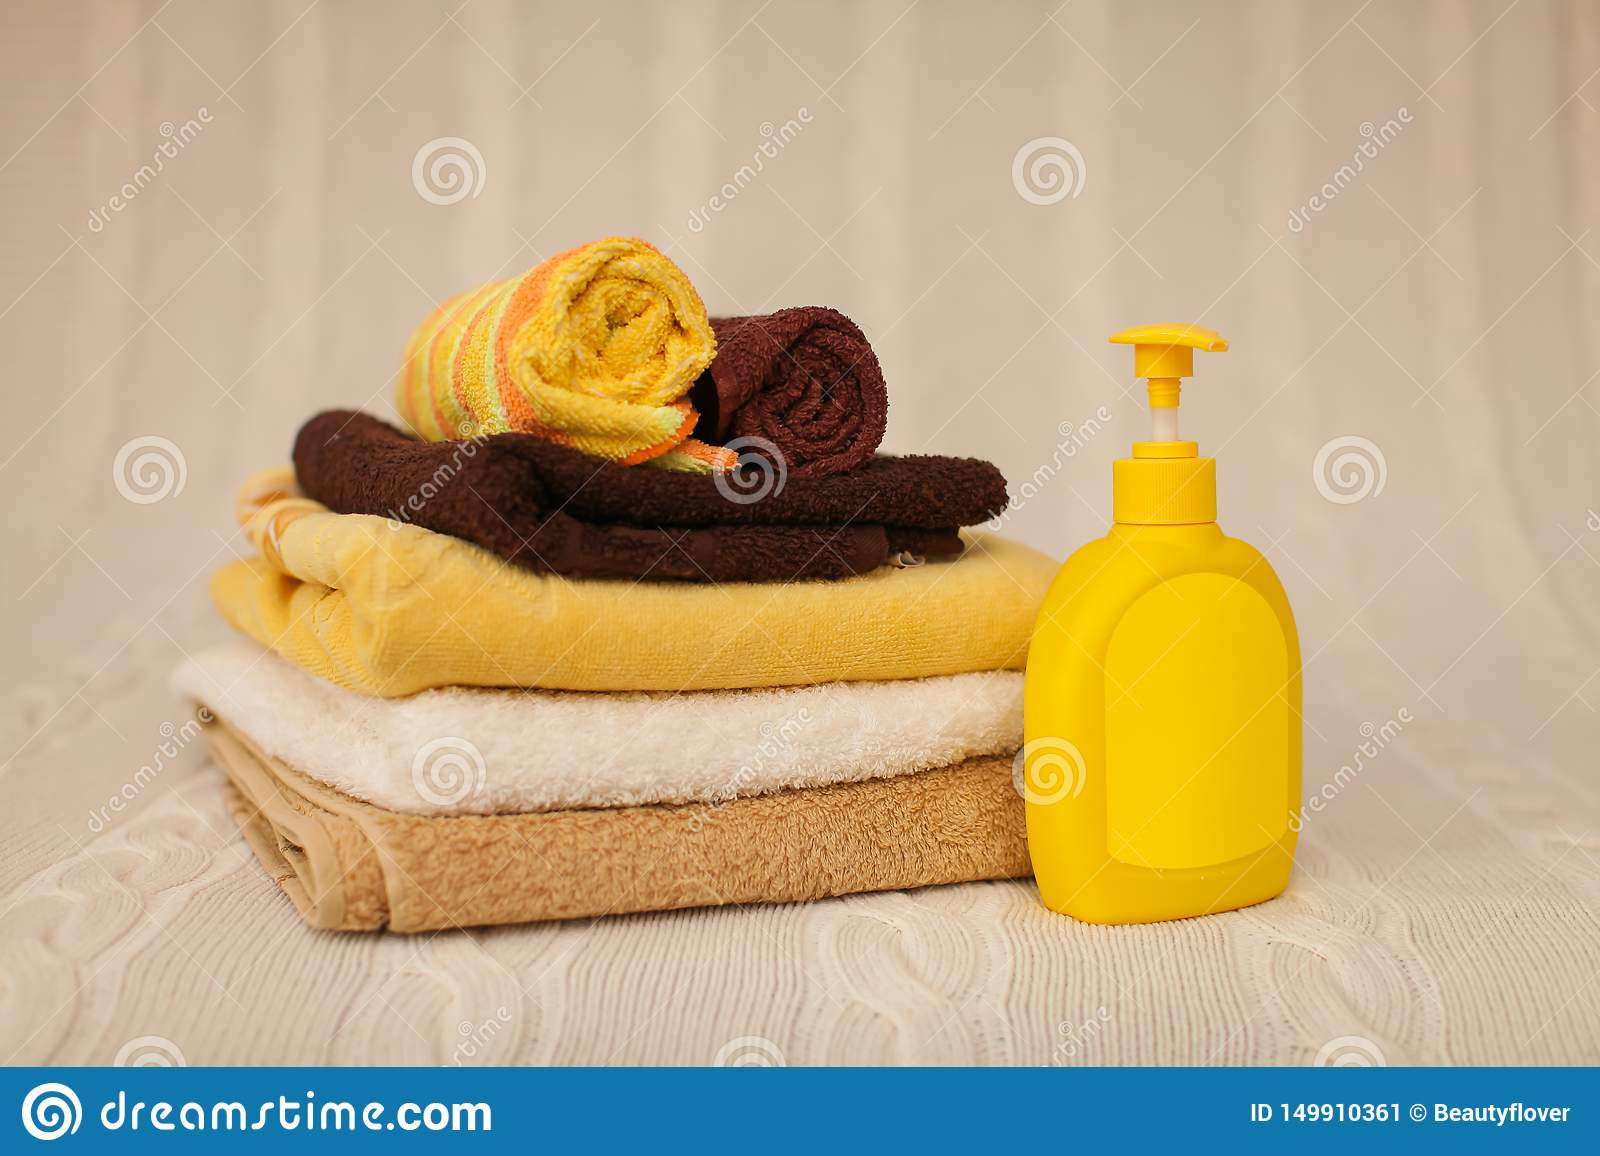 Yellow plastic dispenser with liquid soap and a stack of brown towels on a beige rug in selective focus